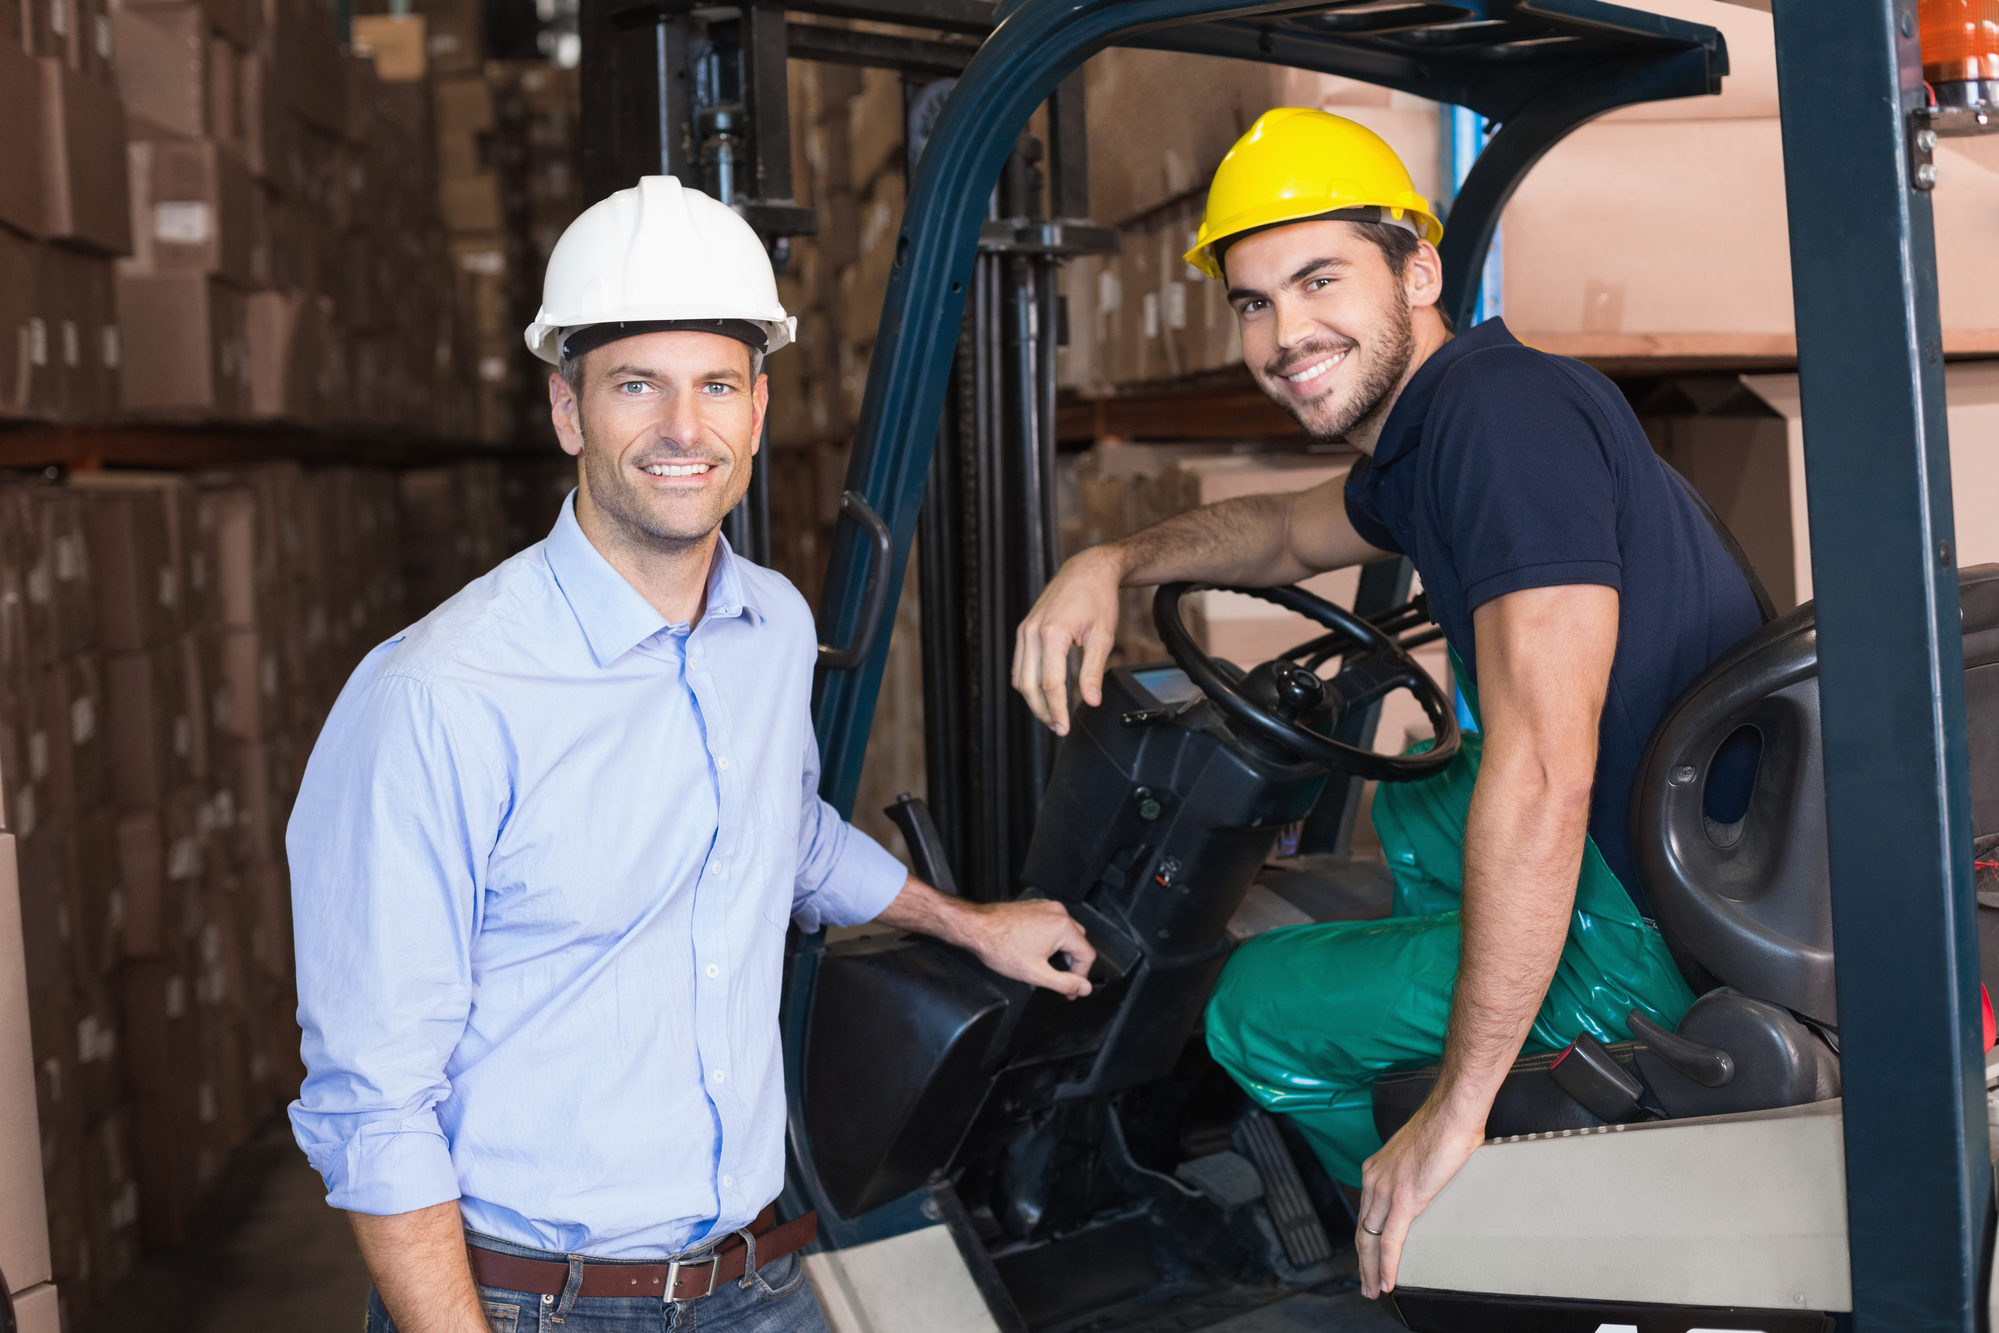 Warehouse manager smiling at camera with forklift driver in a large warehouse